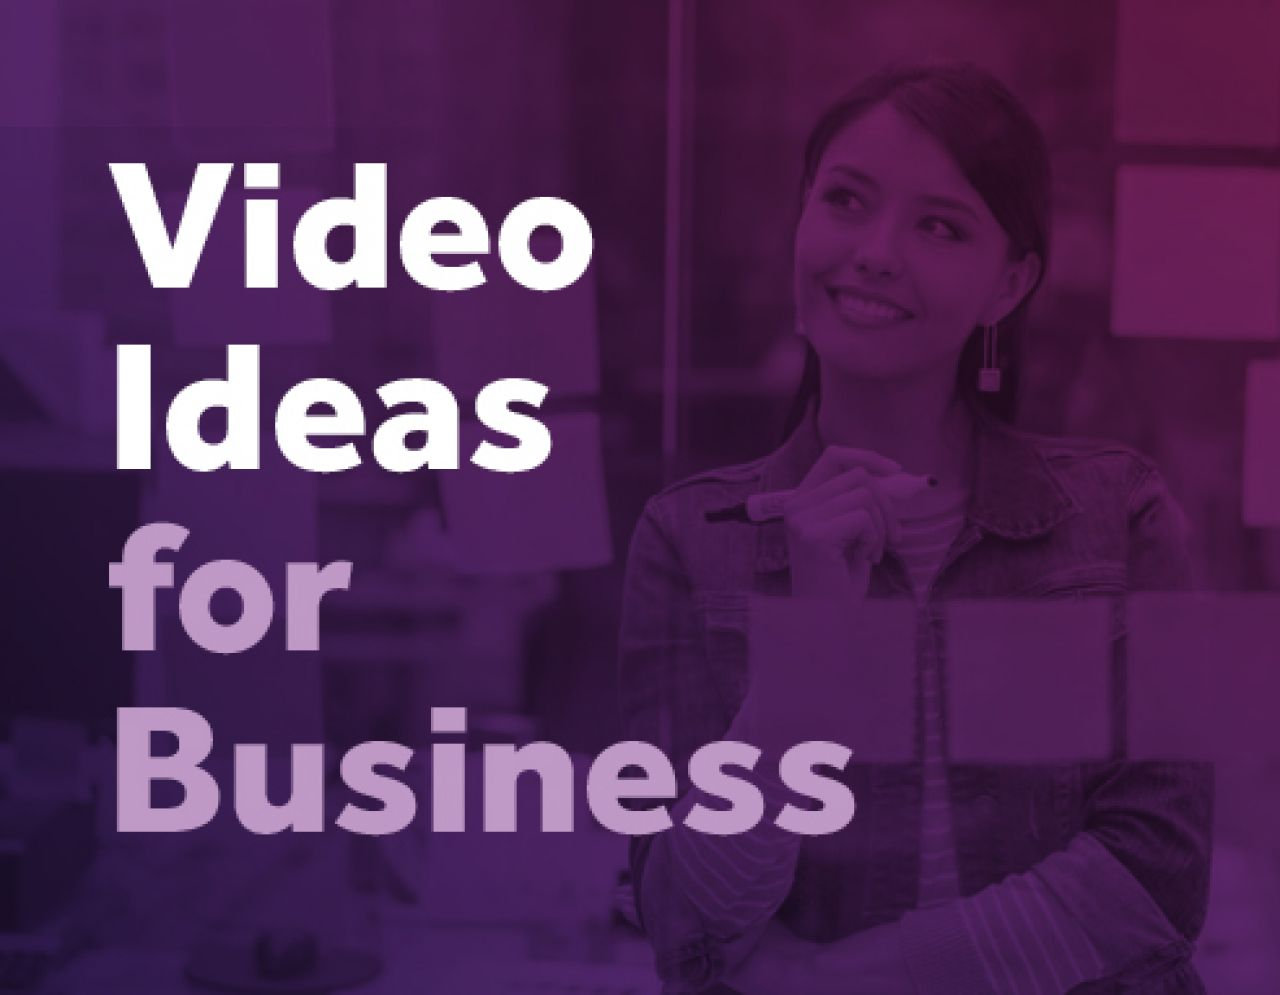 Business Video Production Made Simple with this Free Online Tool